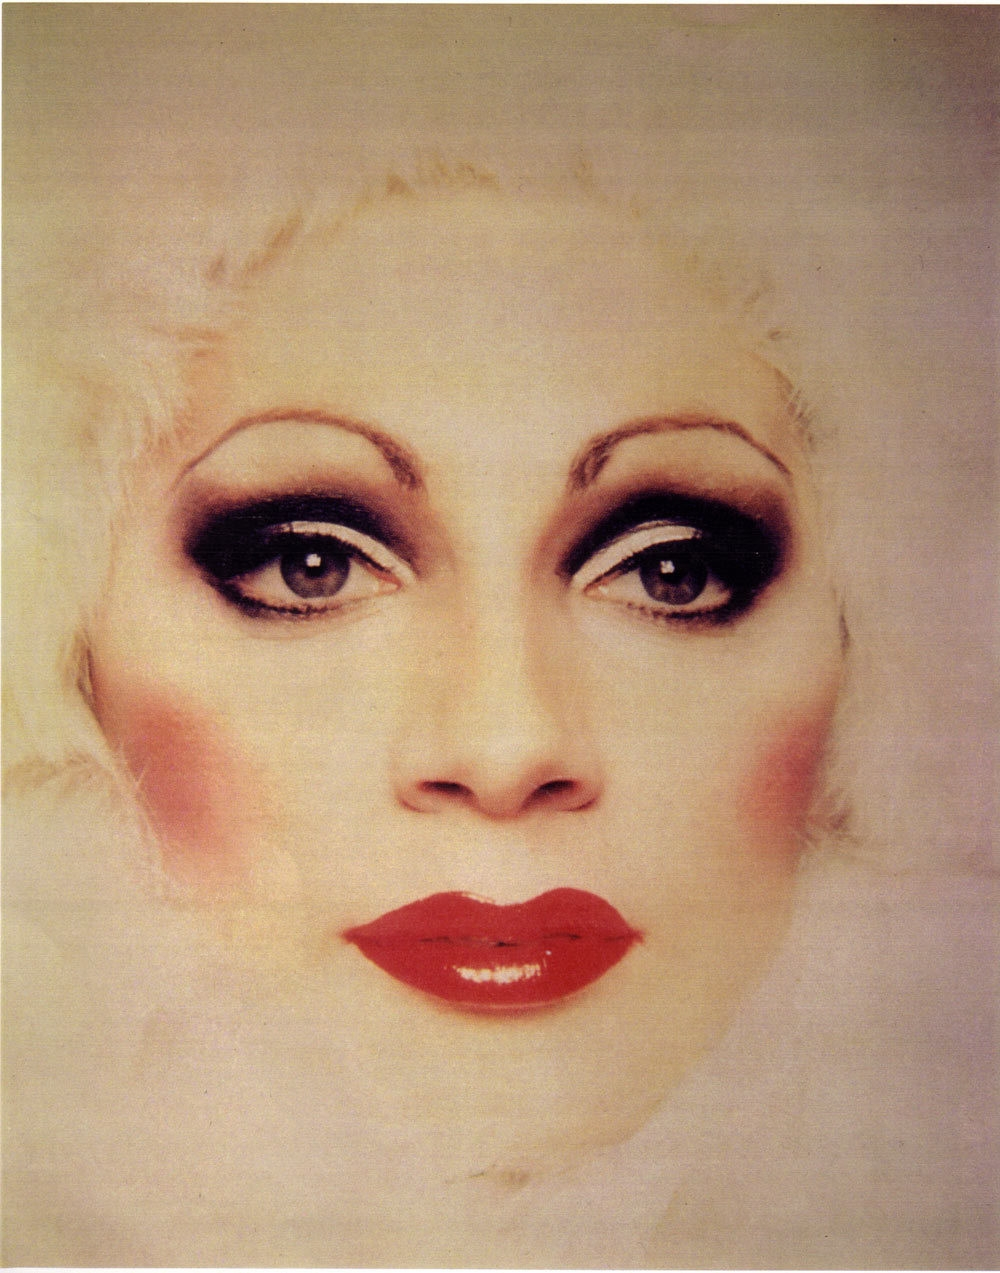 despite-battling-cancer-warhol-superstar-and-trans-pioneer-holly-woodlawn-remains-unstoppable-body-image-1447291409-size_1000